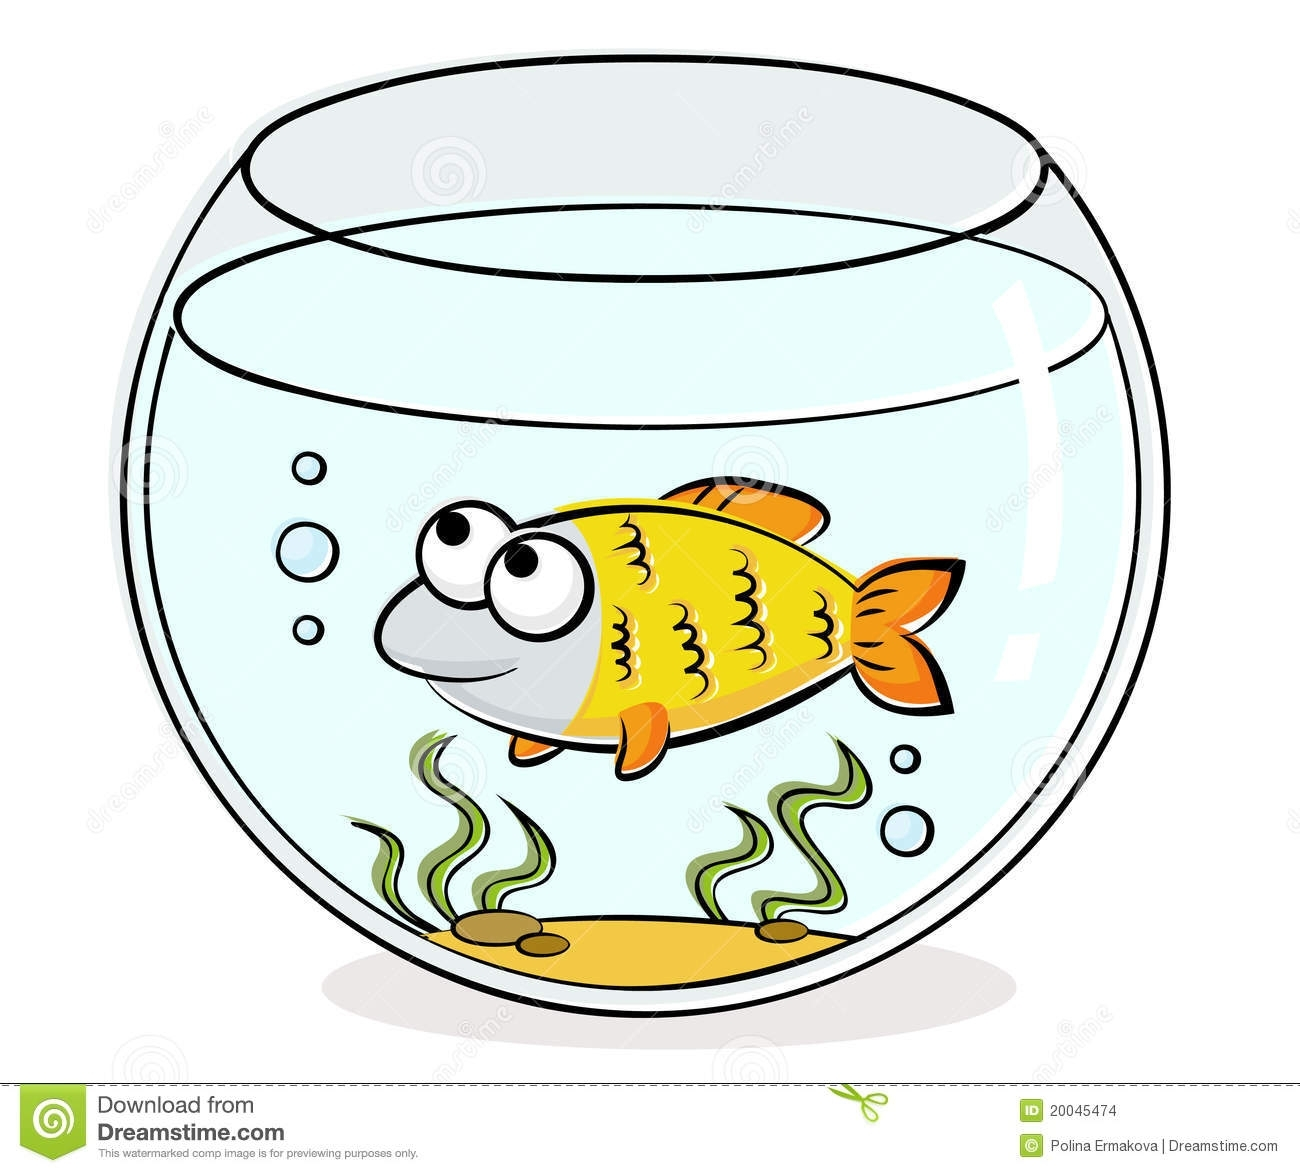 aquarium clipart at getdrawings com free for personal use aquarium rh getdrawings com aquarius clip art aquarium clipart black and white